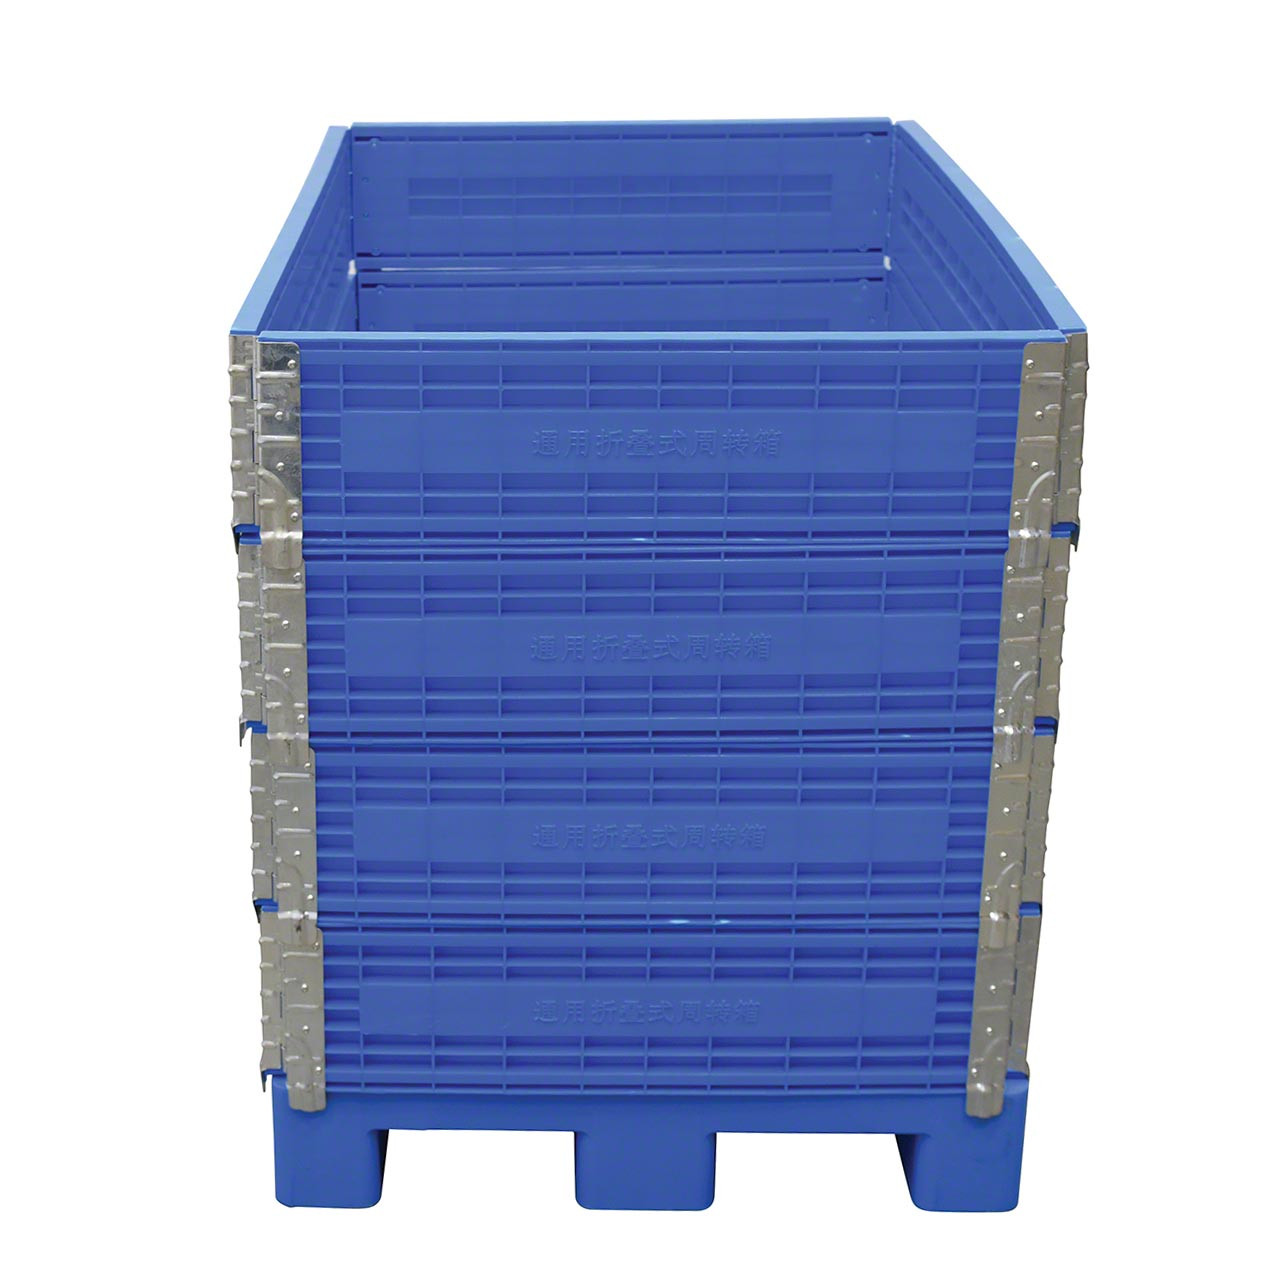 Four-Level Container